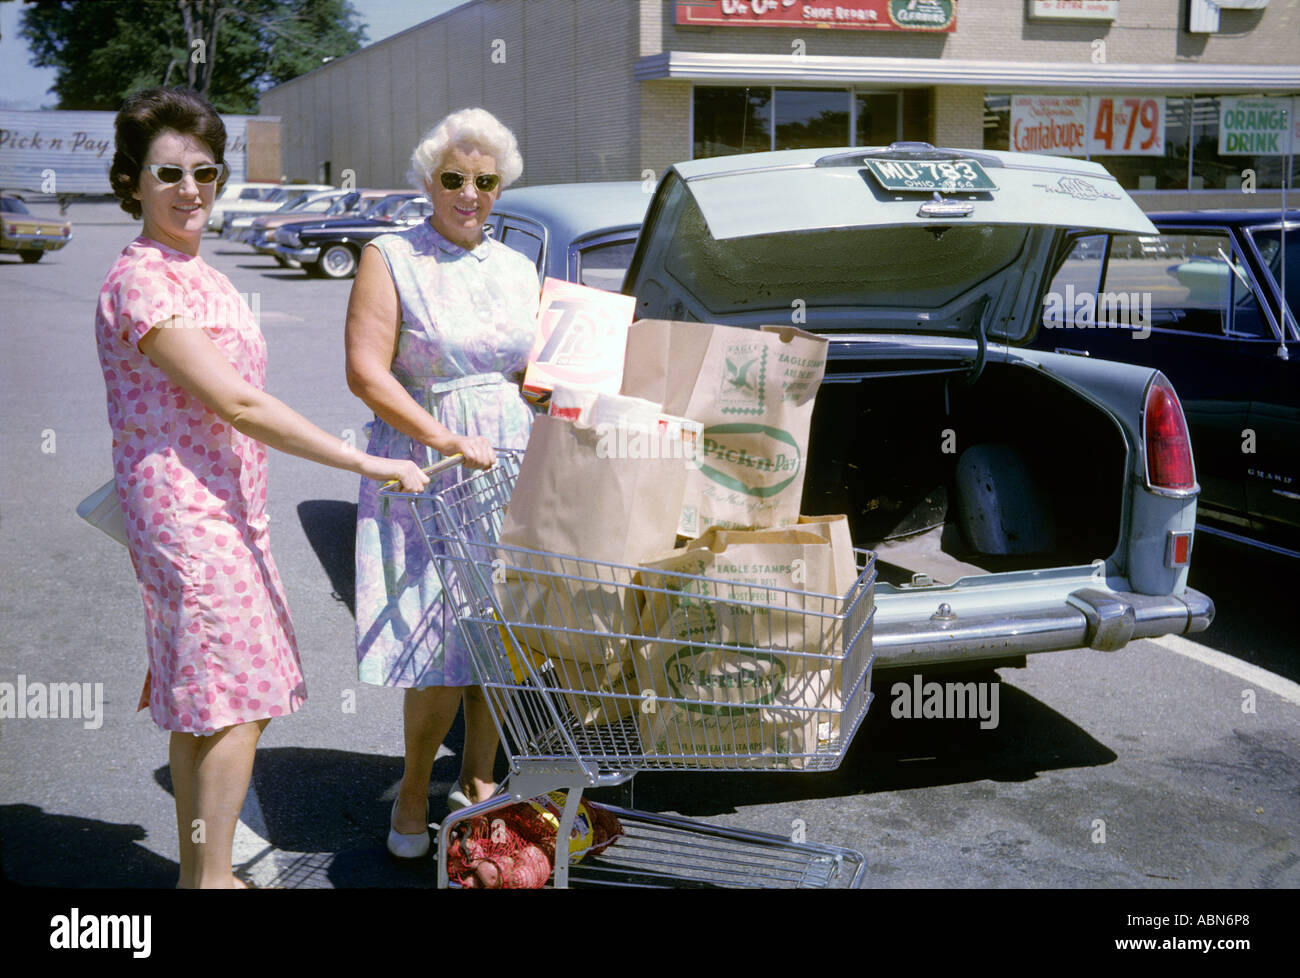 """Deux femmes shoppers, ^1964, Cleveland, Ohio, USA' Photo Stock"